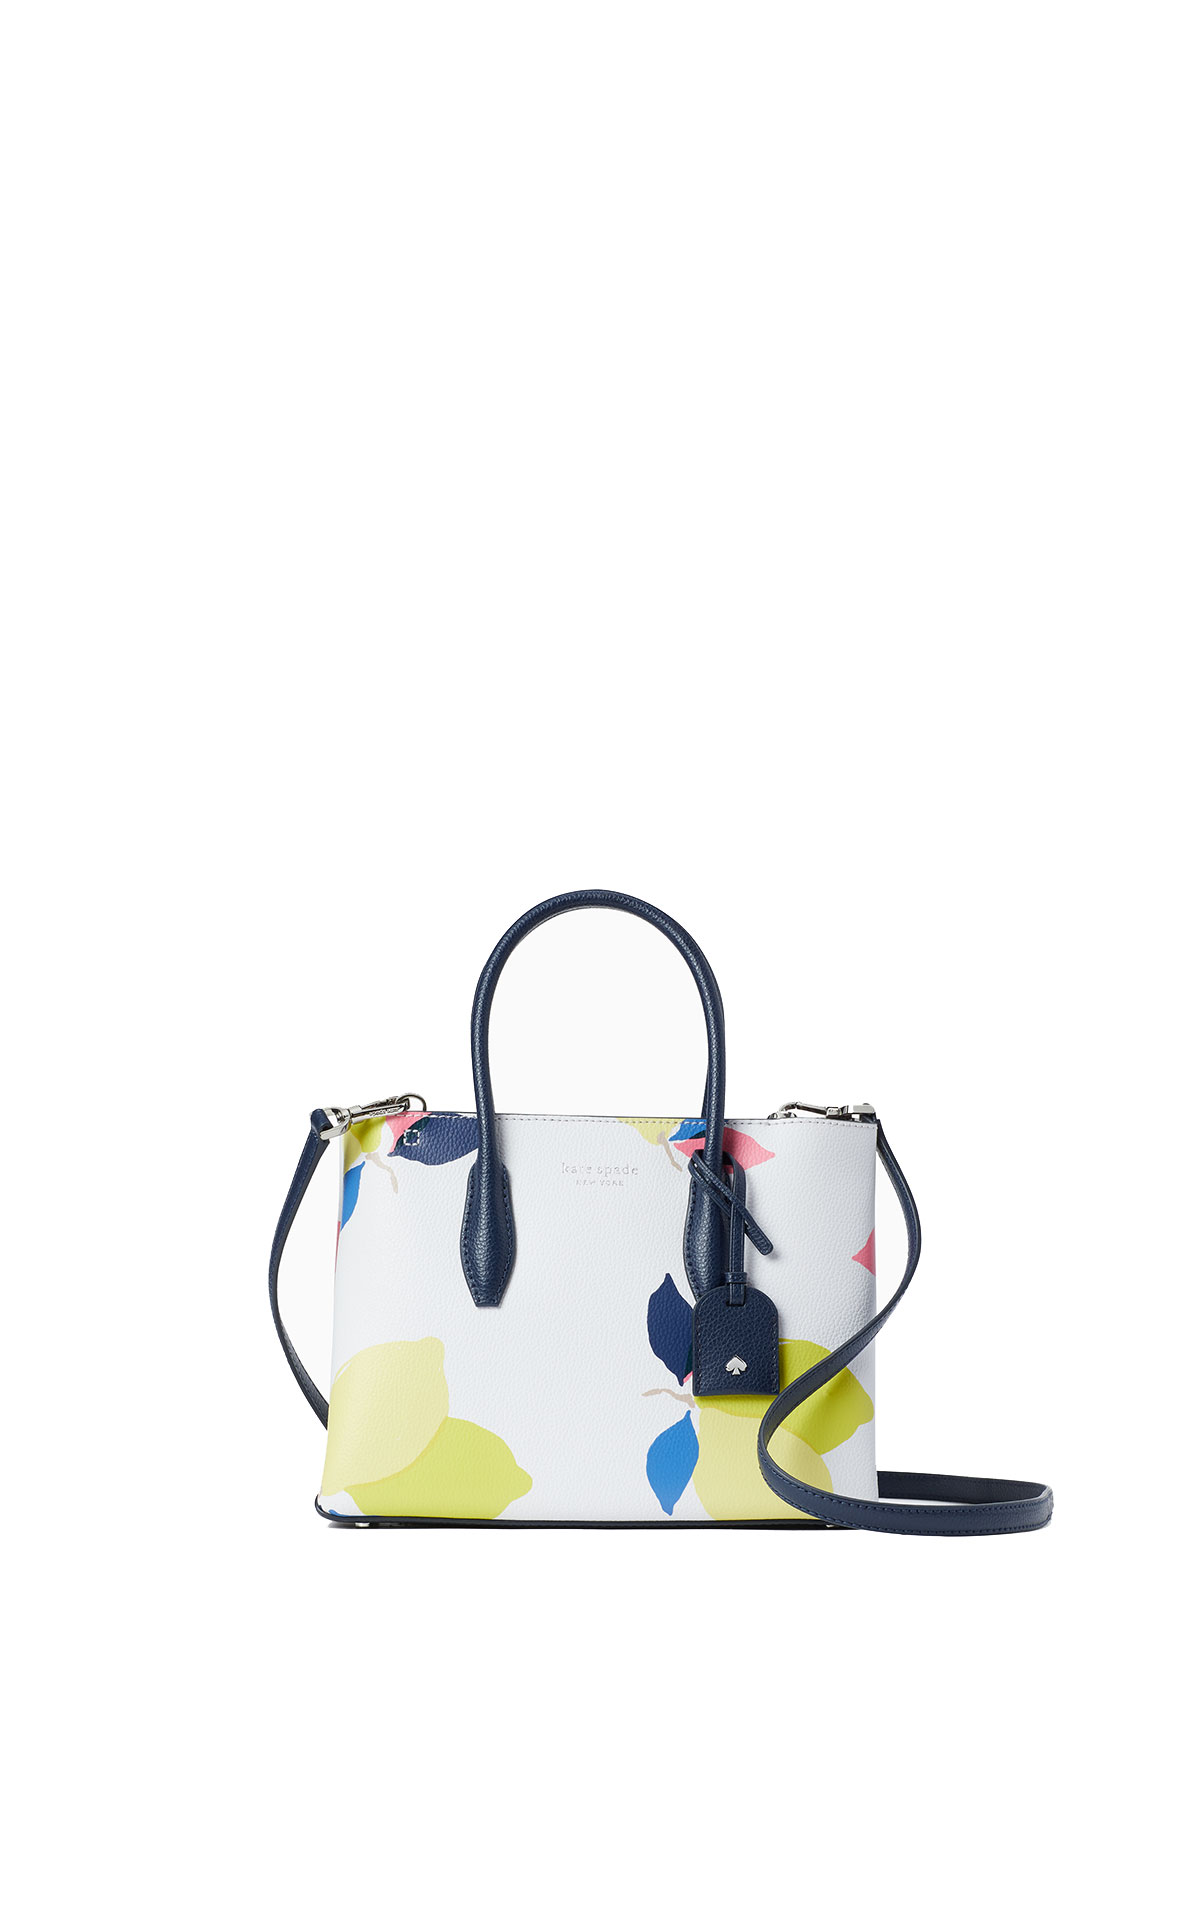 kate spade new york Eva lemon zest small top zip satchel from Bicester Village